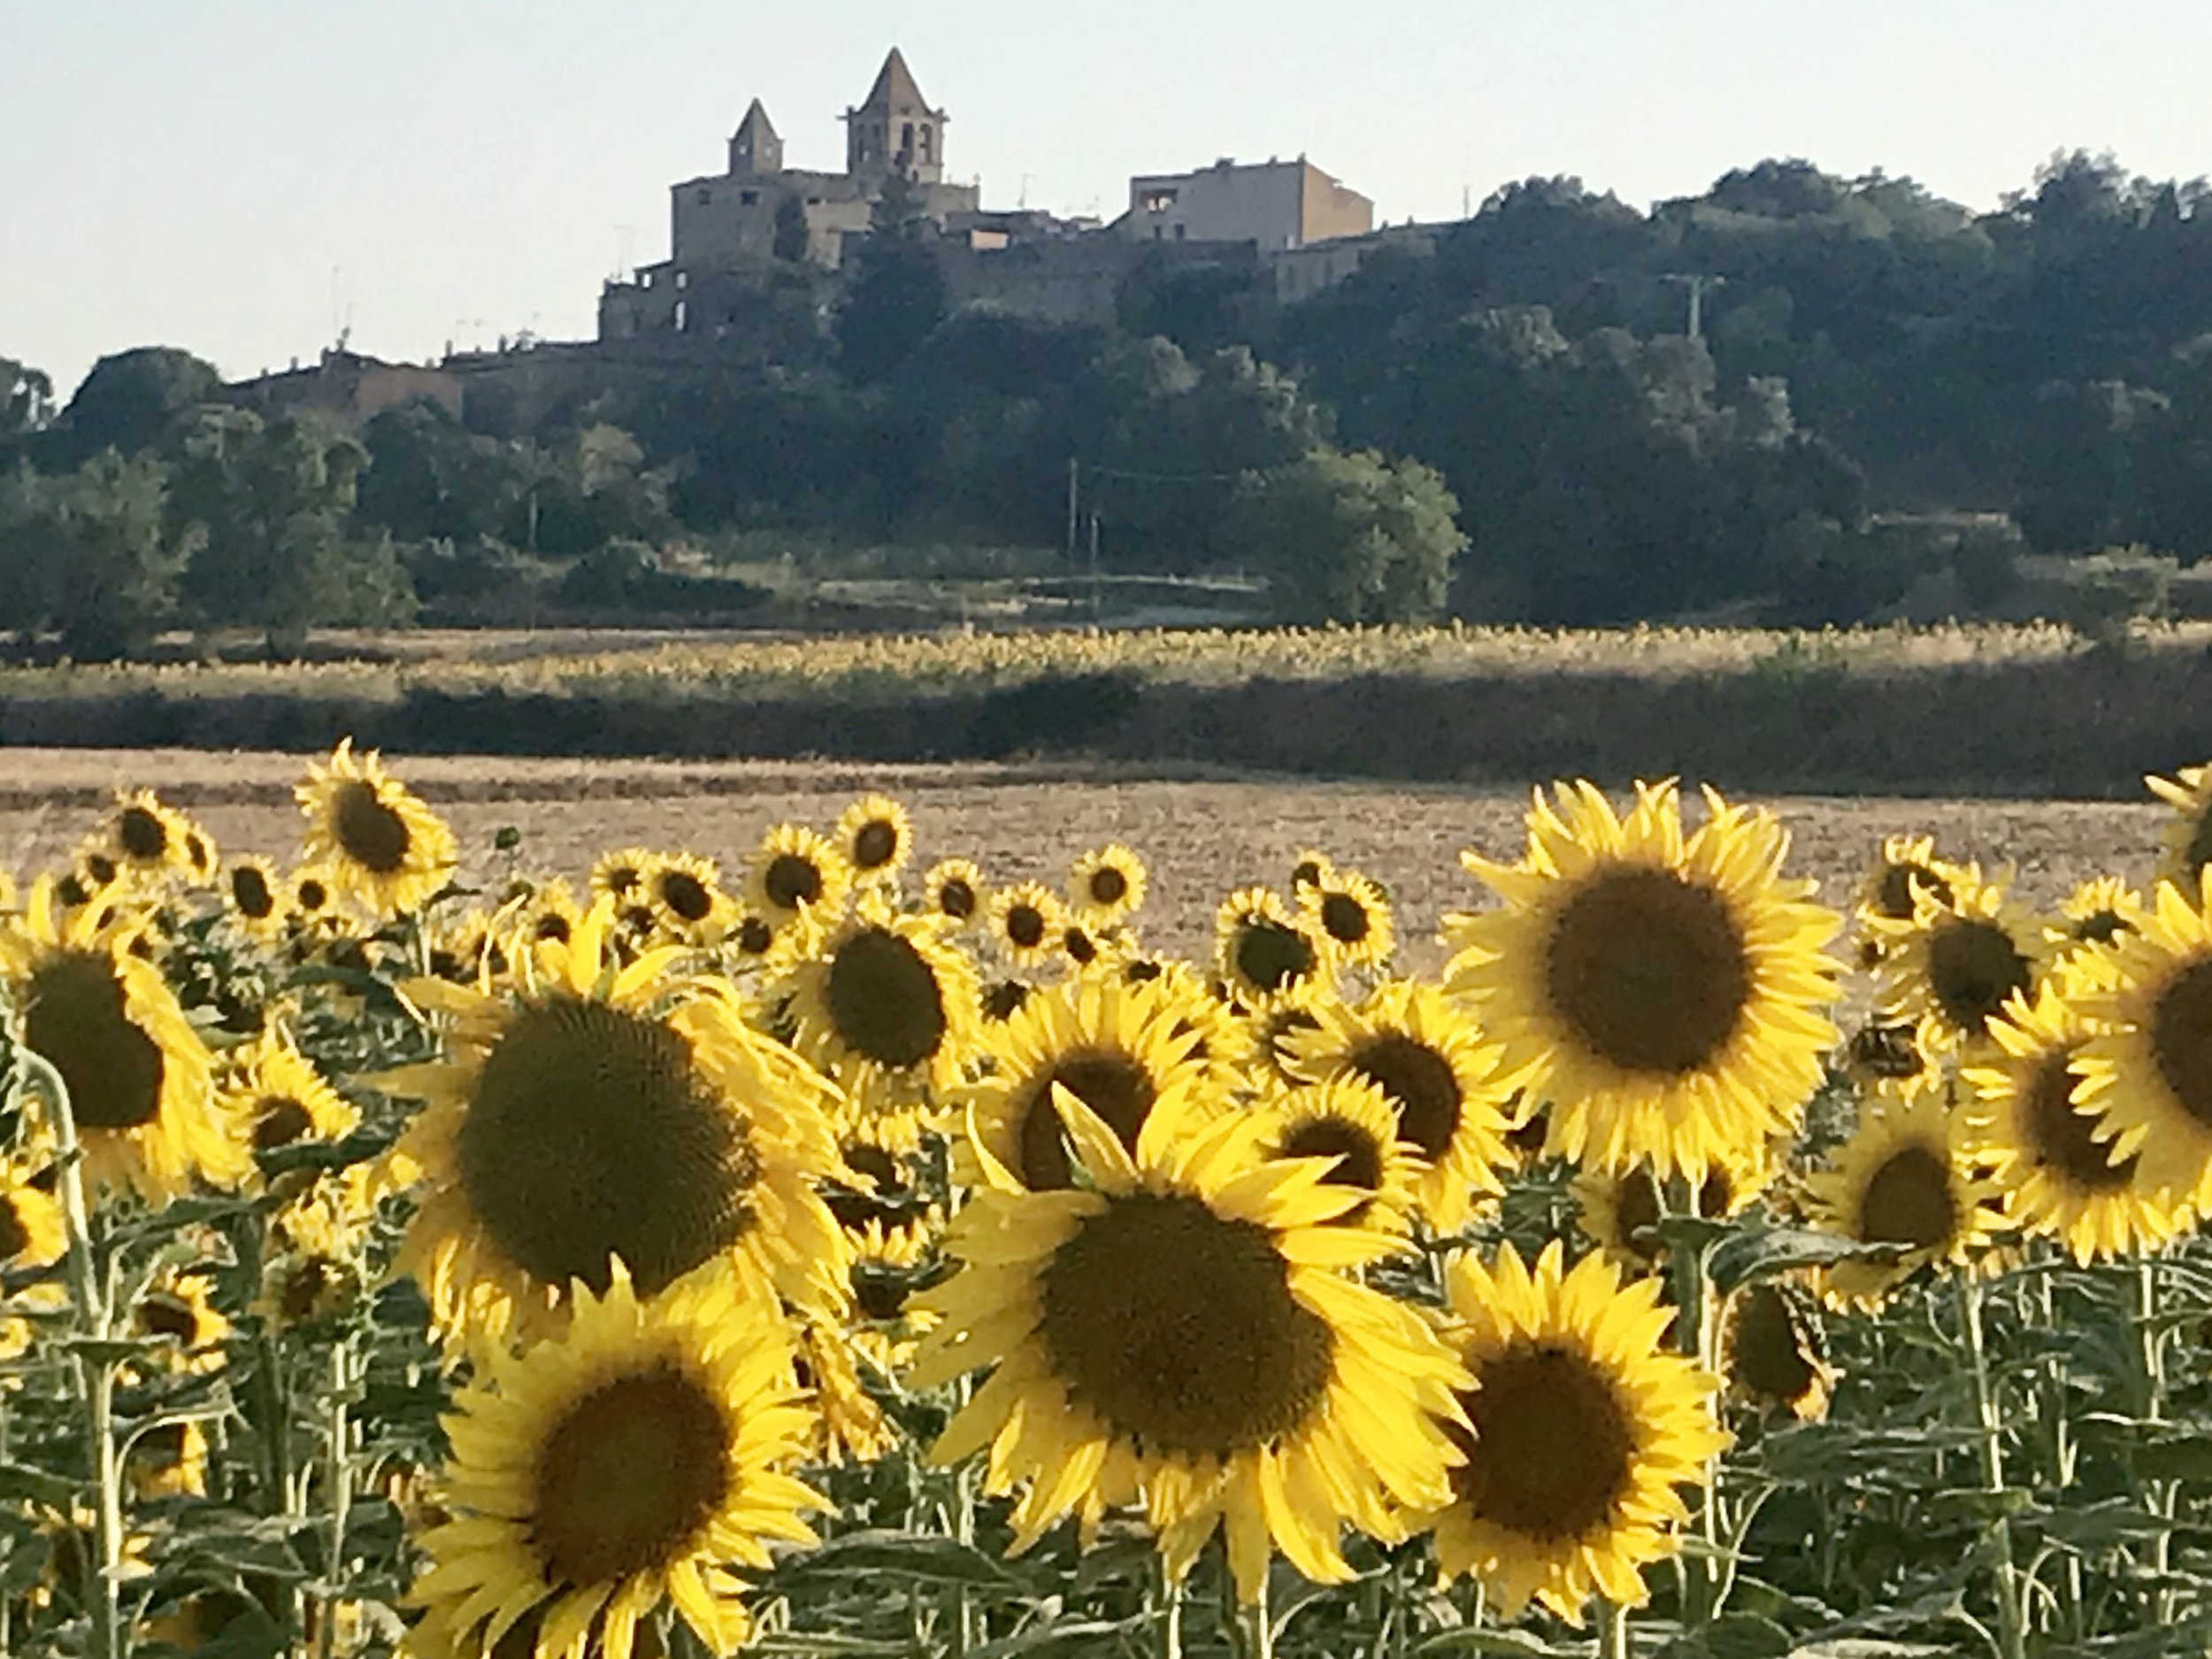 Ah - to walk right into the fields of sunflowers to see the bees diving and the petals lifting in the soft summer breeze (outside Monells/Madremanya).